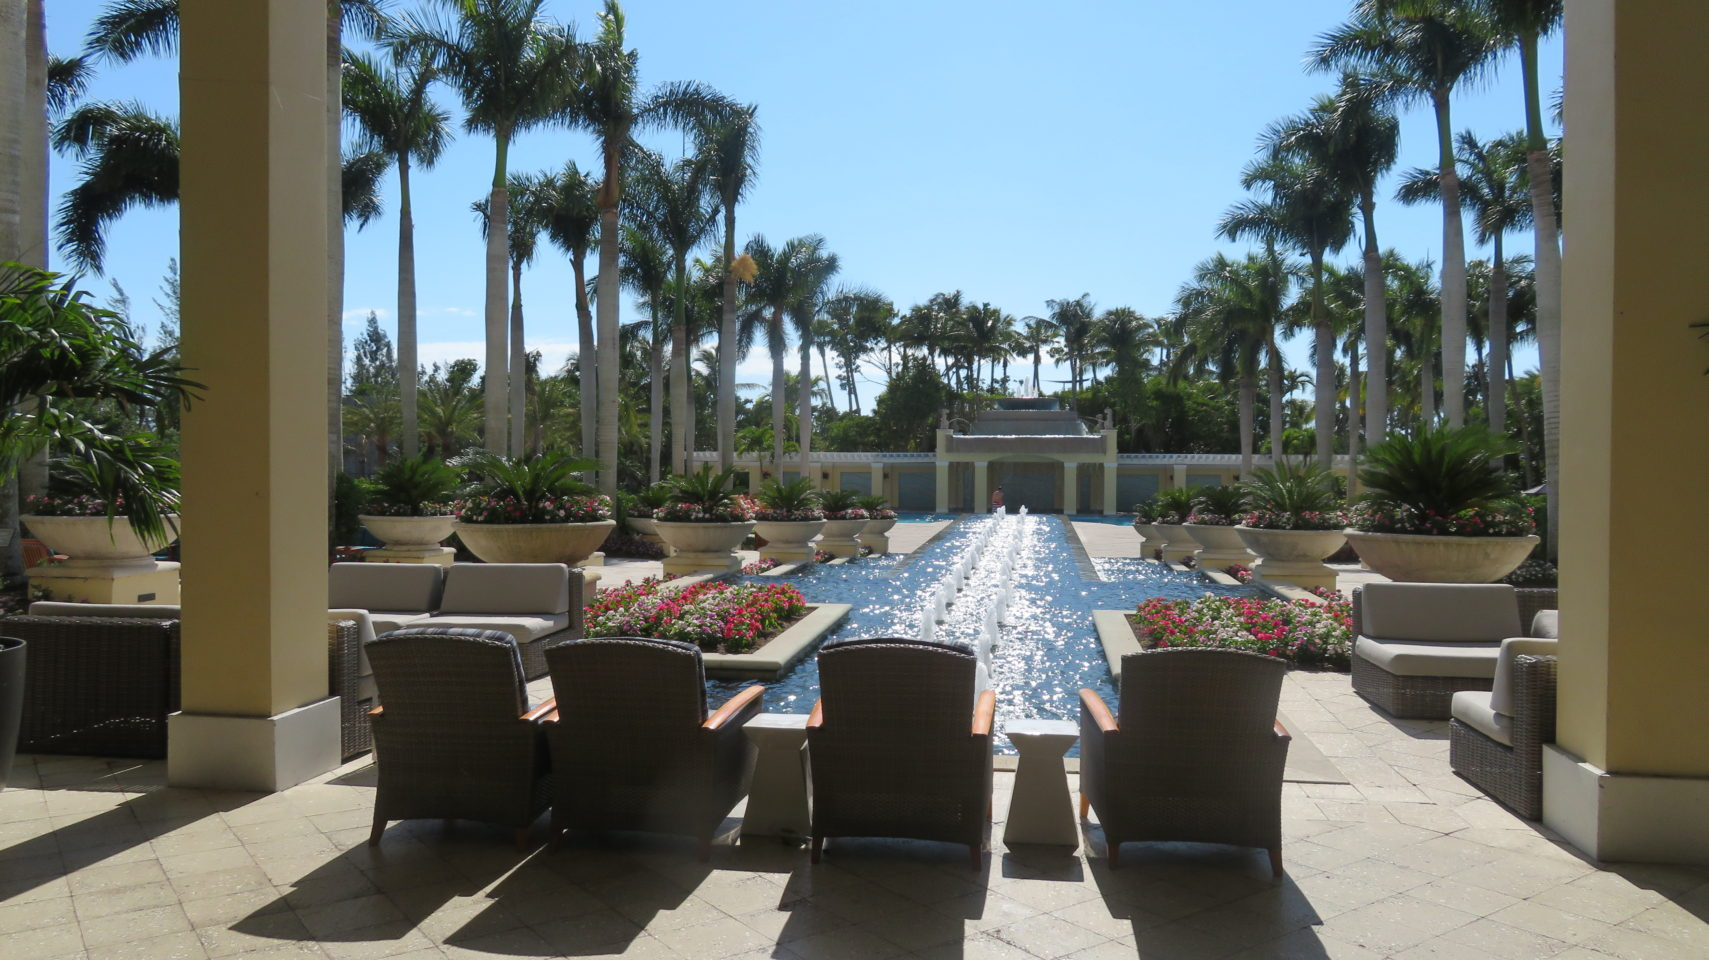 Hyatt Regency Coconut Point in Bonita Springs, Florida ~ Gem of a Florida Resort